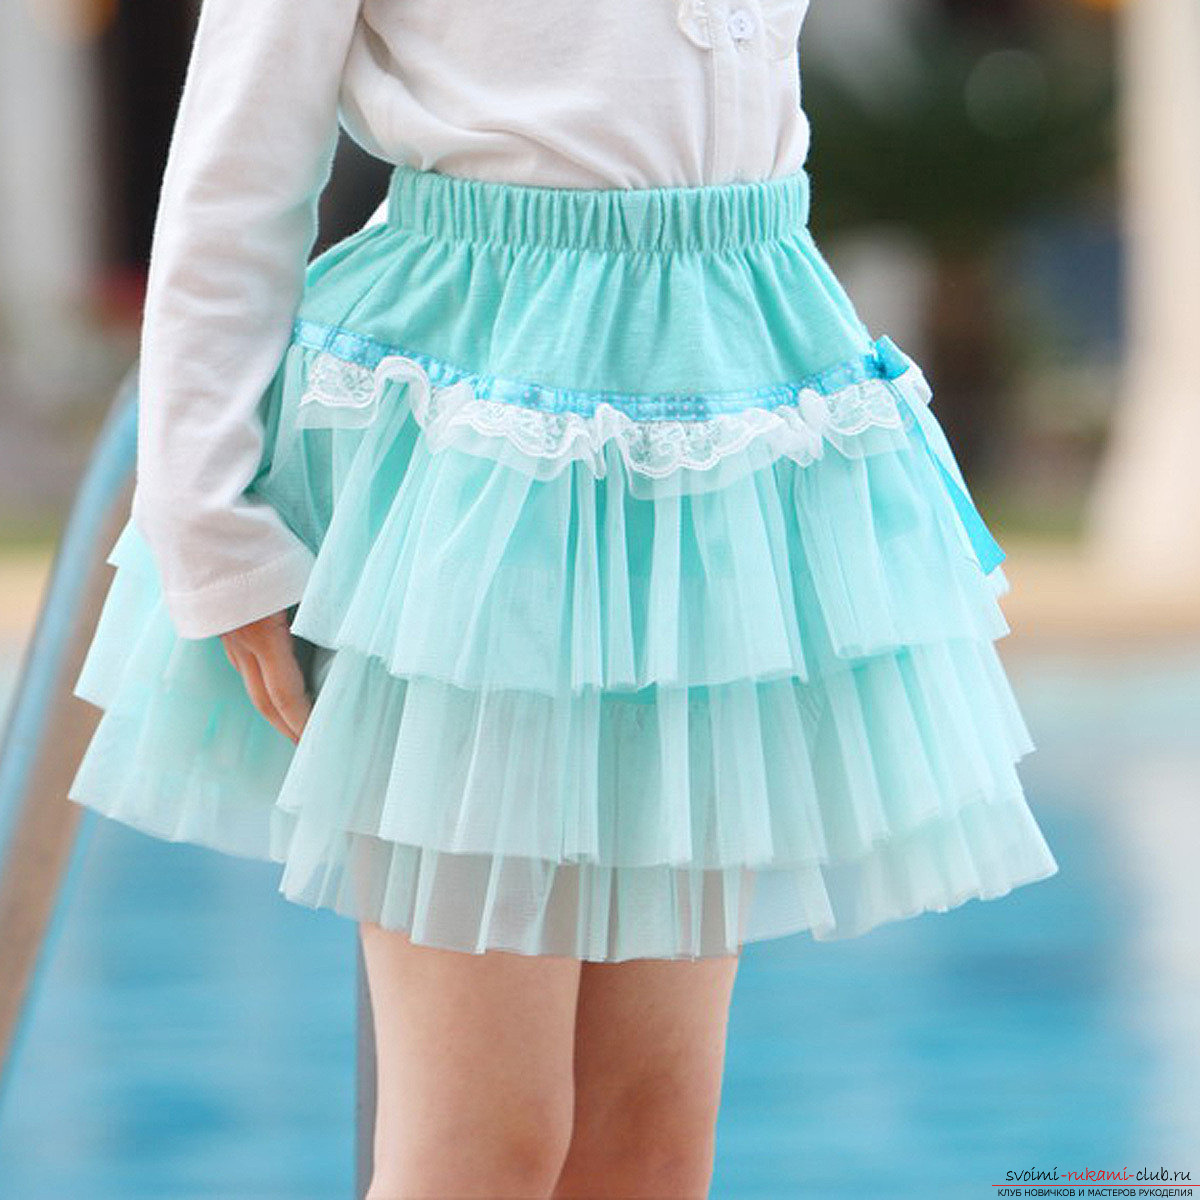 How to create a skirt-tutu or a magnificent dress with your own hands ?. Photo №4